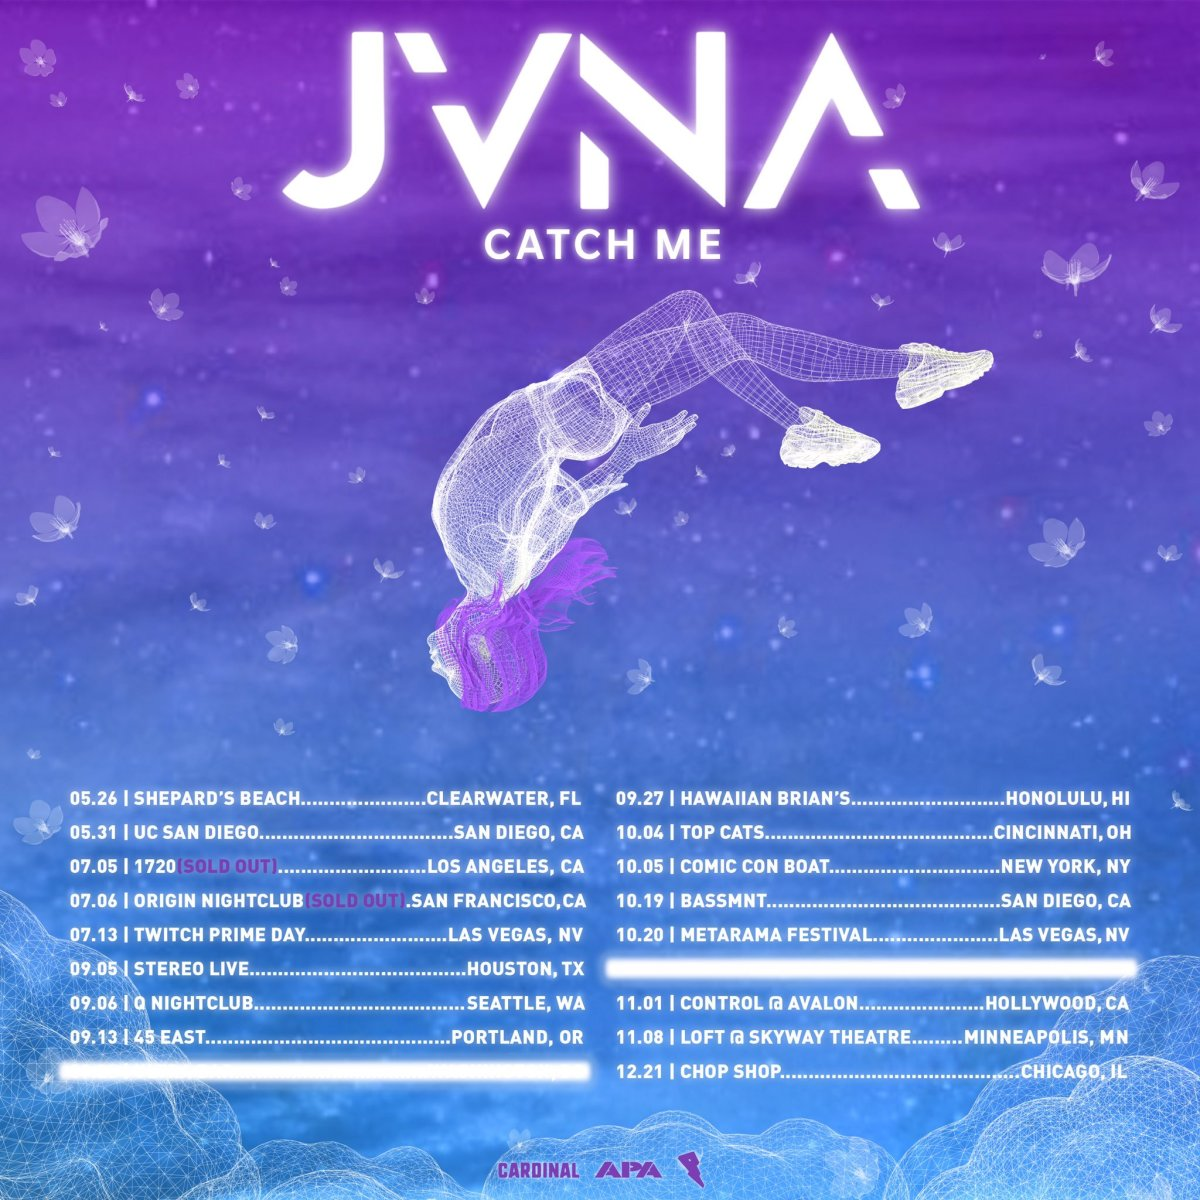 JVNA Catch Me Tour